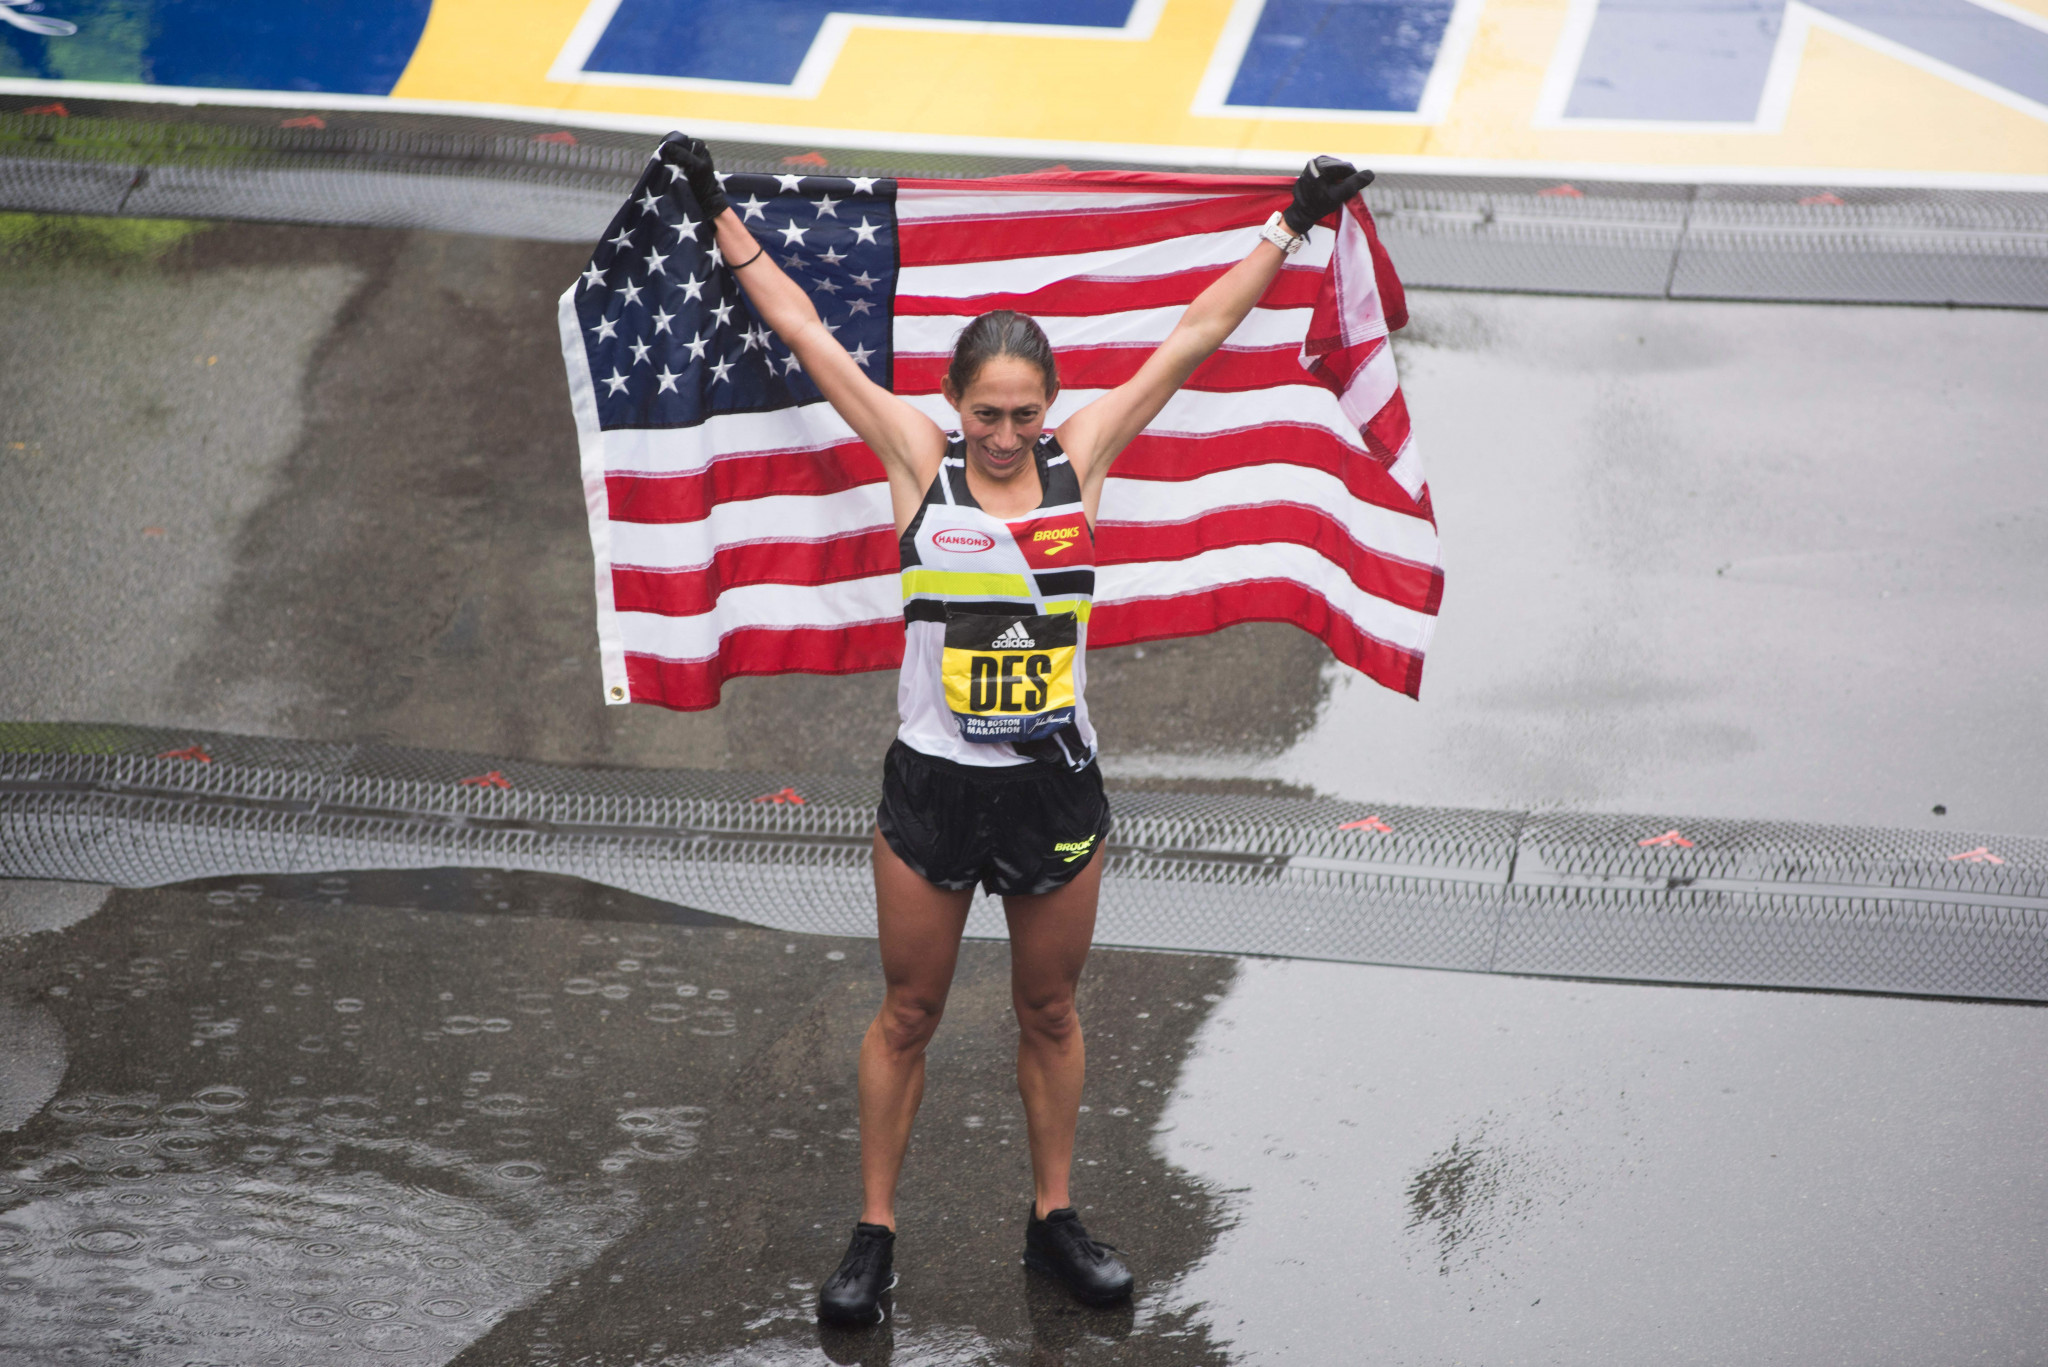 Desiree Linden became the first American female winner of the Boston Marathon since 1985 last month ©Getty Images